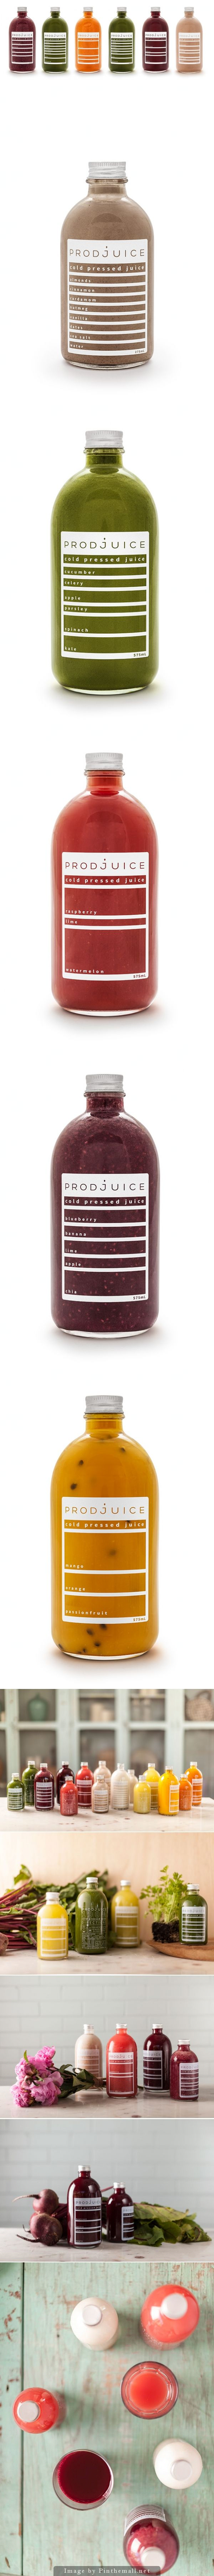 87 best project juice images on pinterest packaging design prodjuice a cold pressed juice malvernweather Images